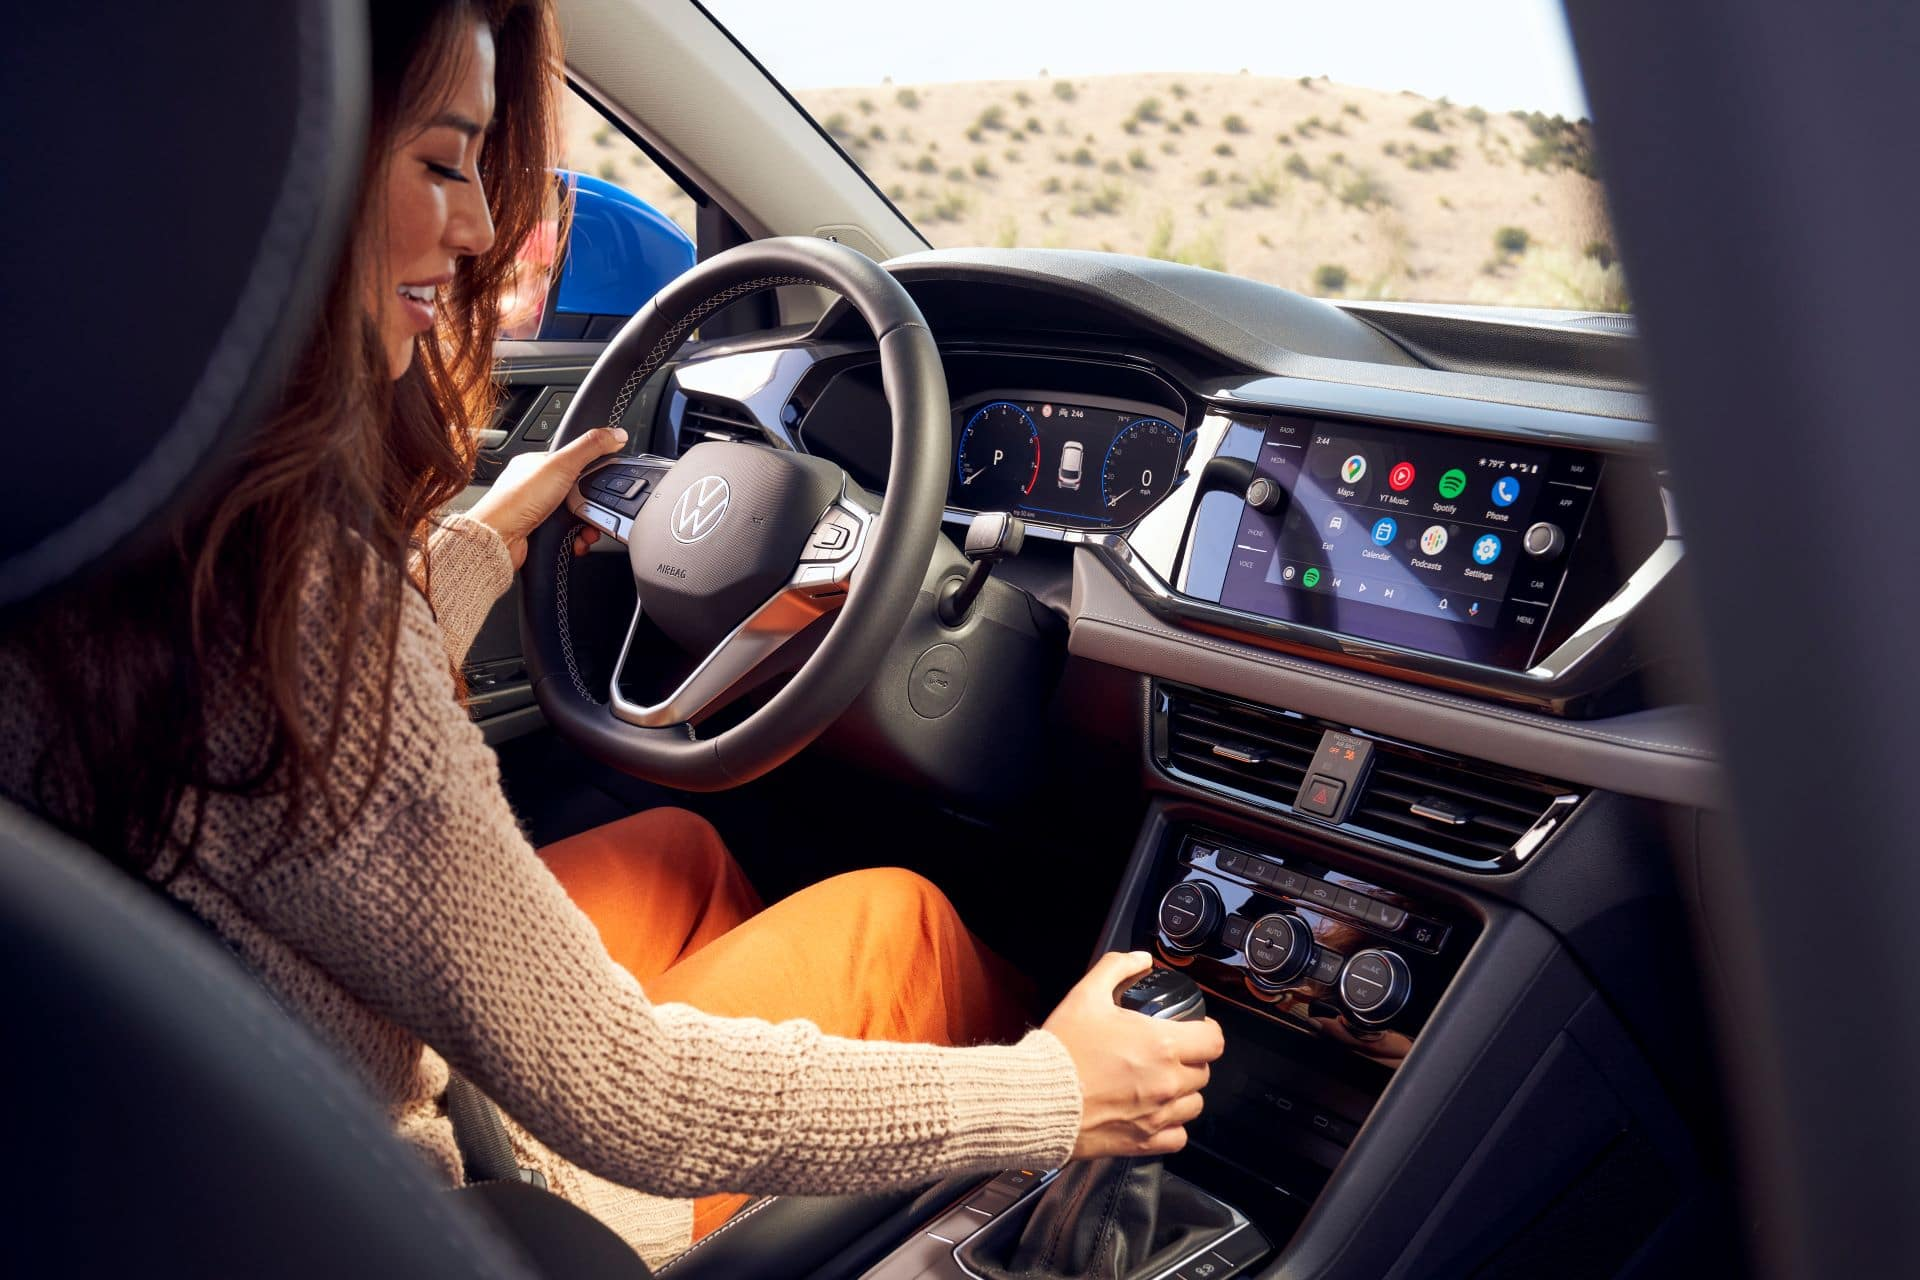 Reserve your test drive at Bill Jacobs Volkswagen